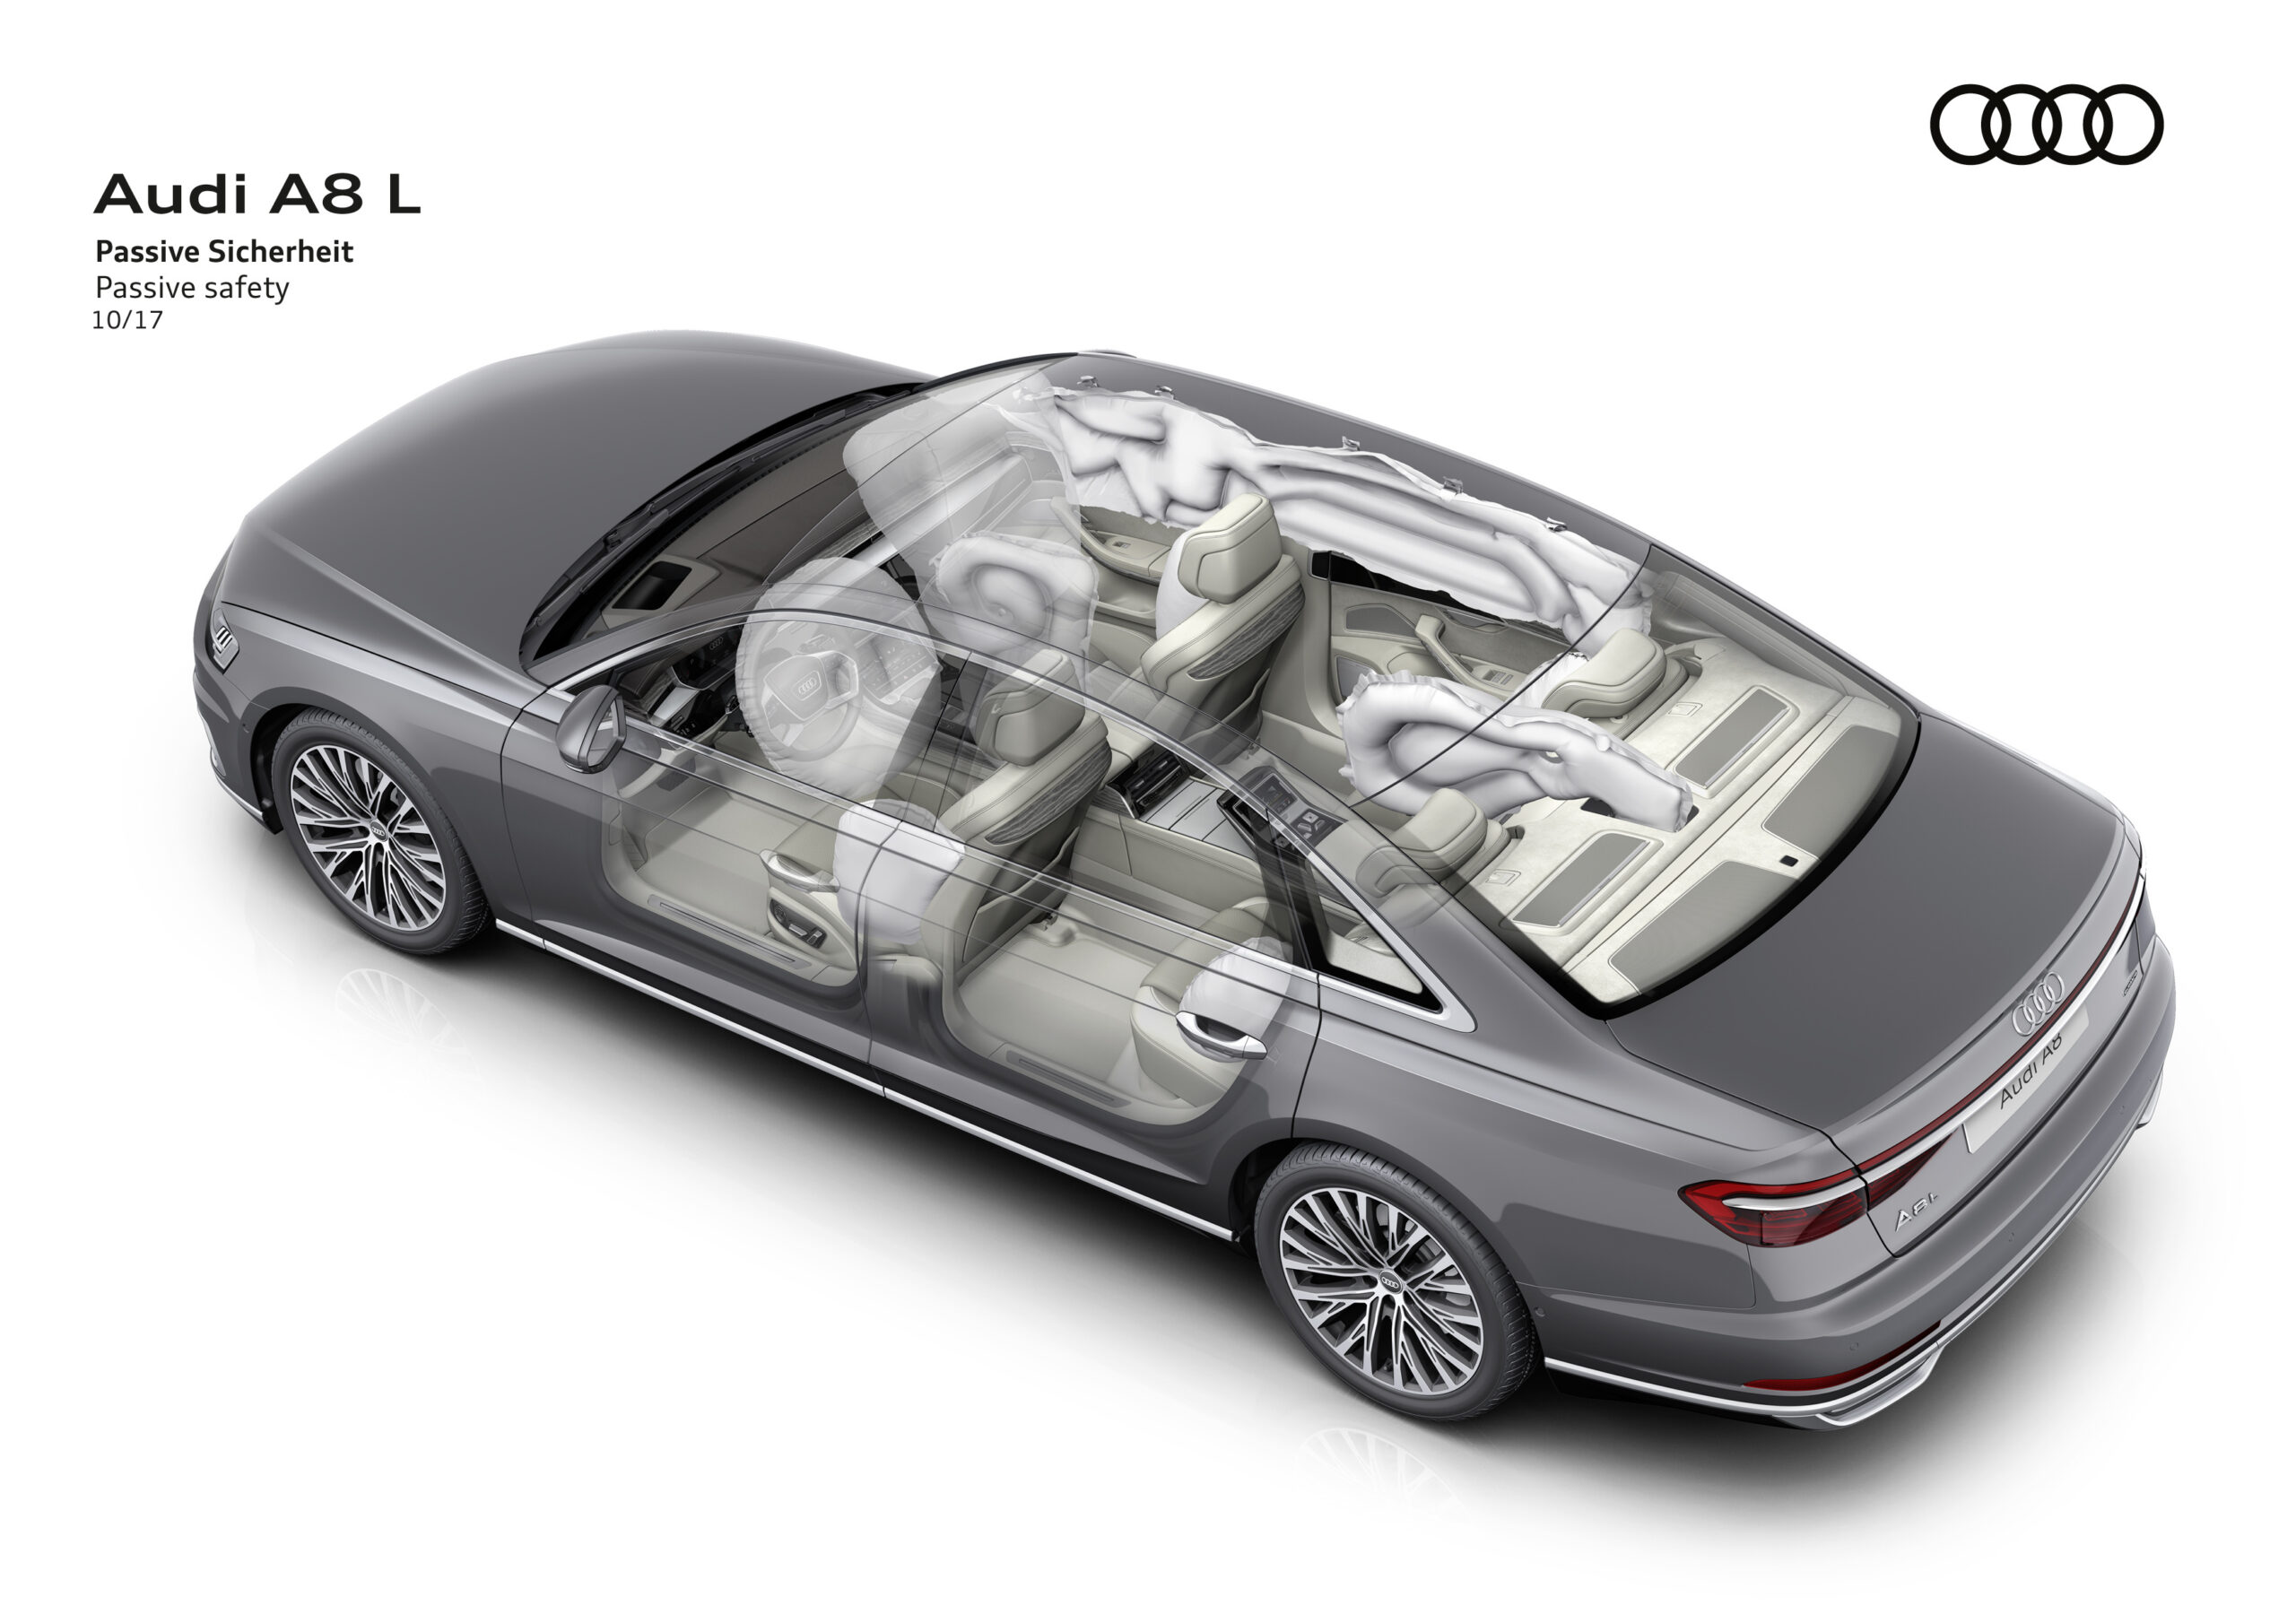 audi a8 18. airbags 1 scaled